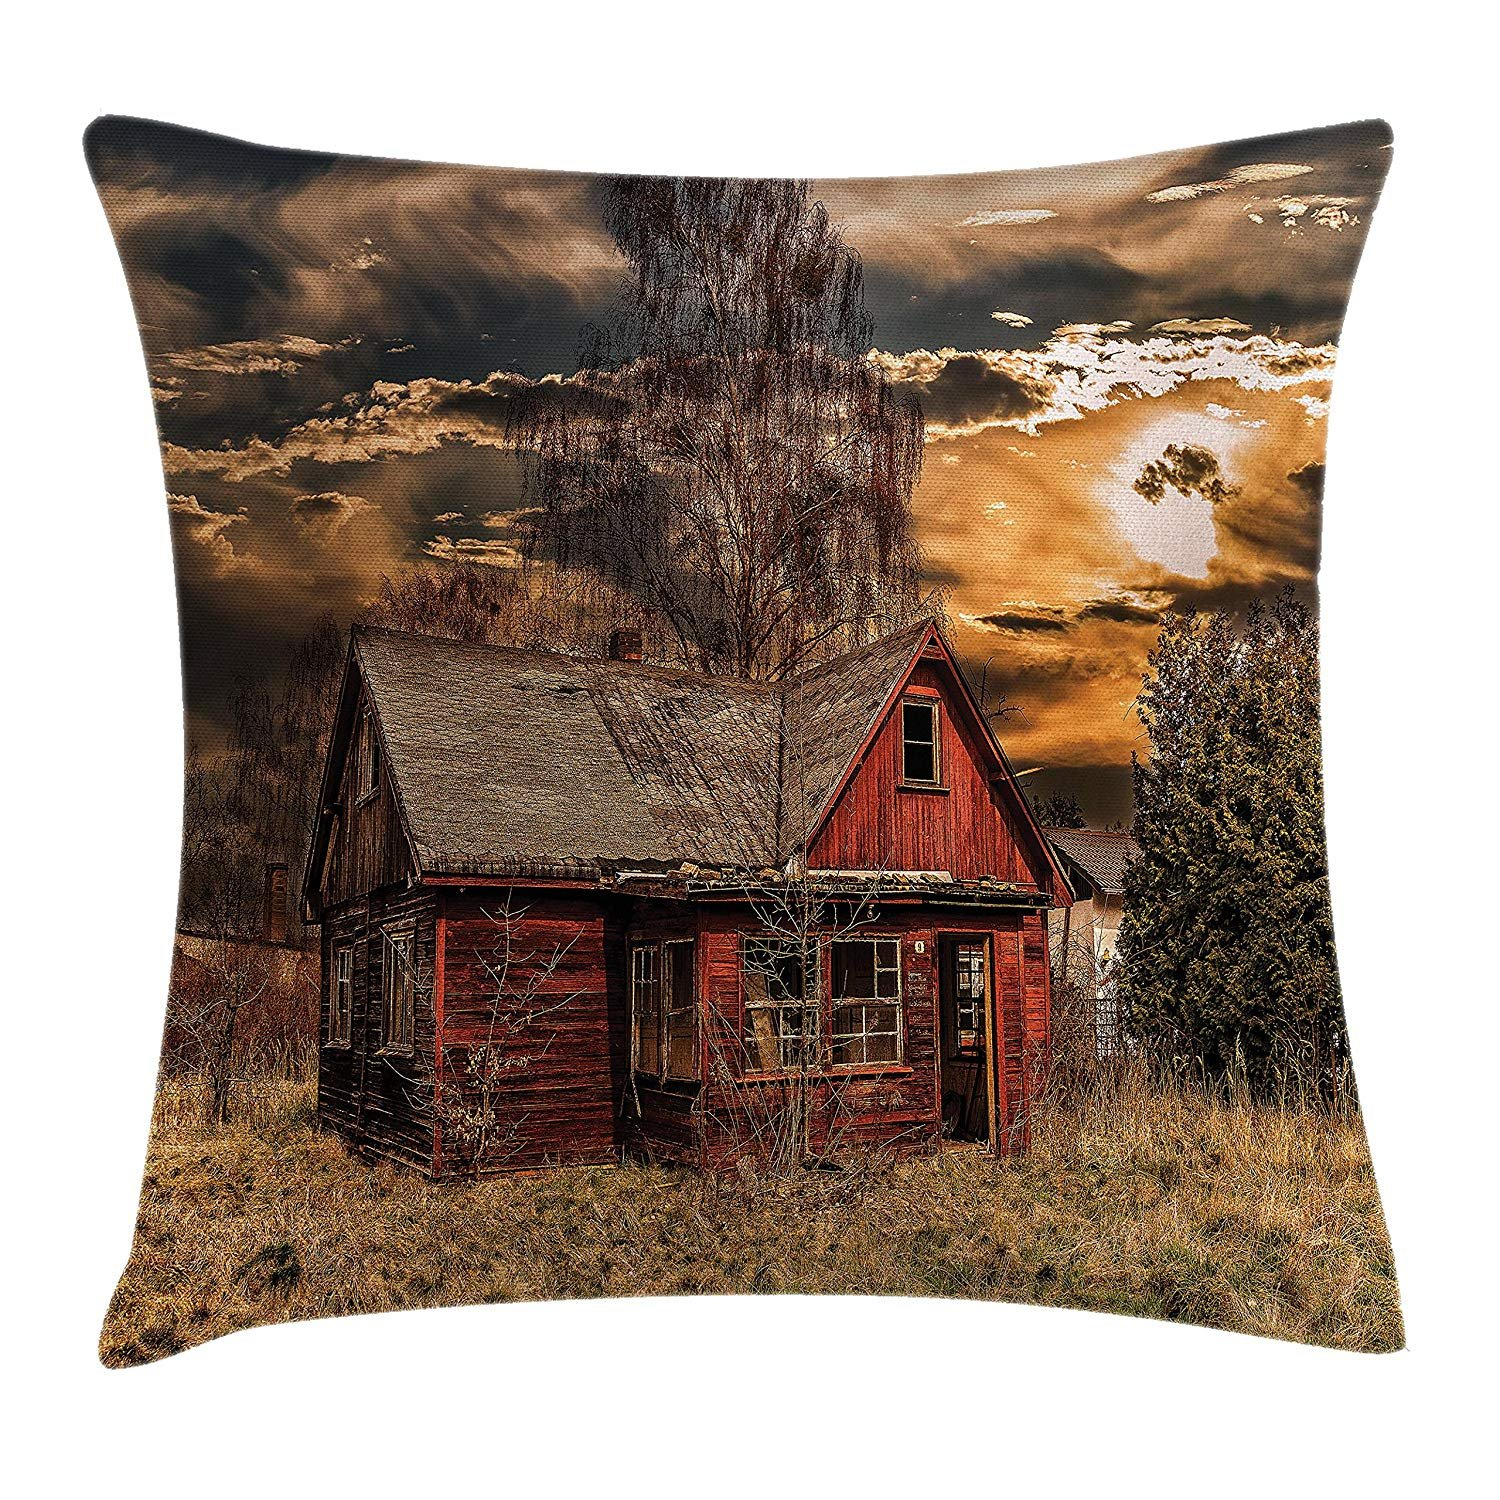 Queen Area Scenery Decor Scary Horror Movie Themed Abandoned House in Pale Grass Garden Sunset Photo Square Throw Pillow Covers Cushion Case for Sofa Bedroom Car 18x18 Inch, Multicolor